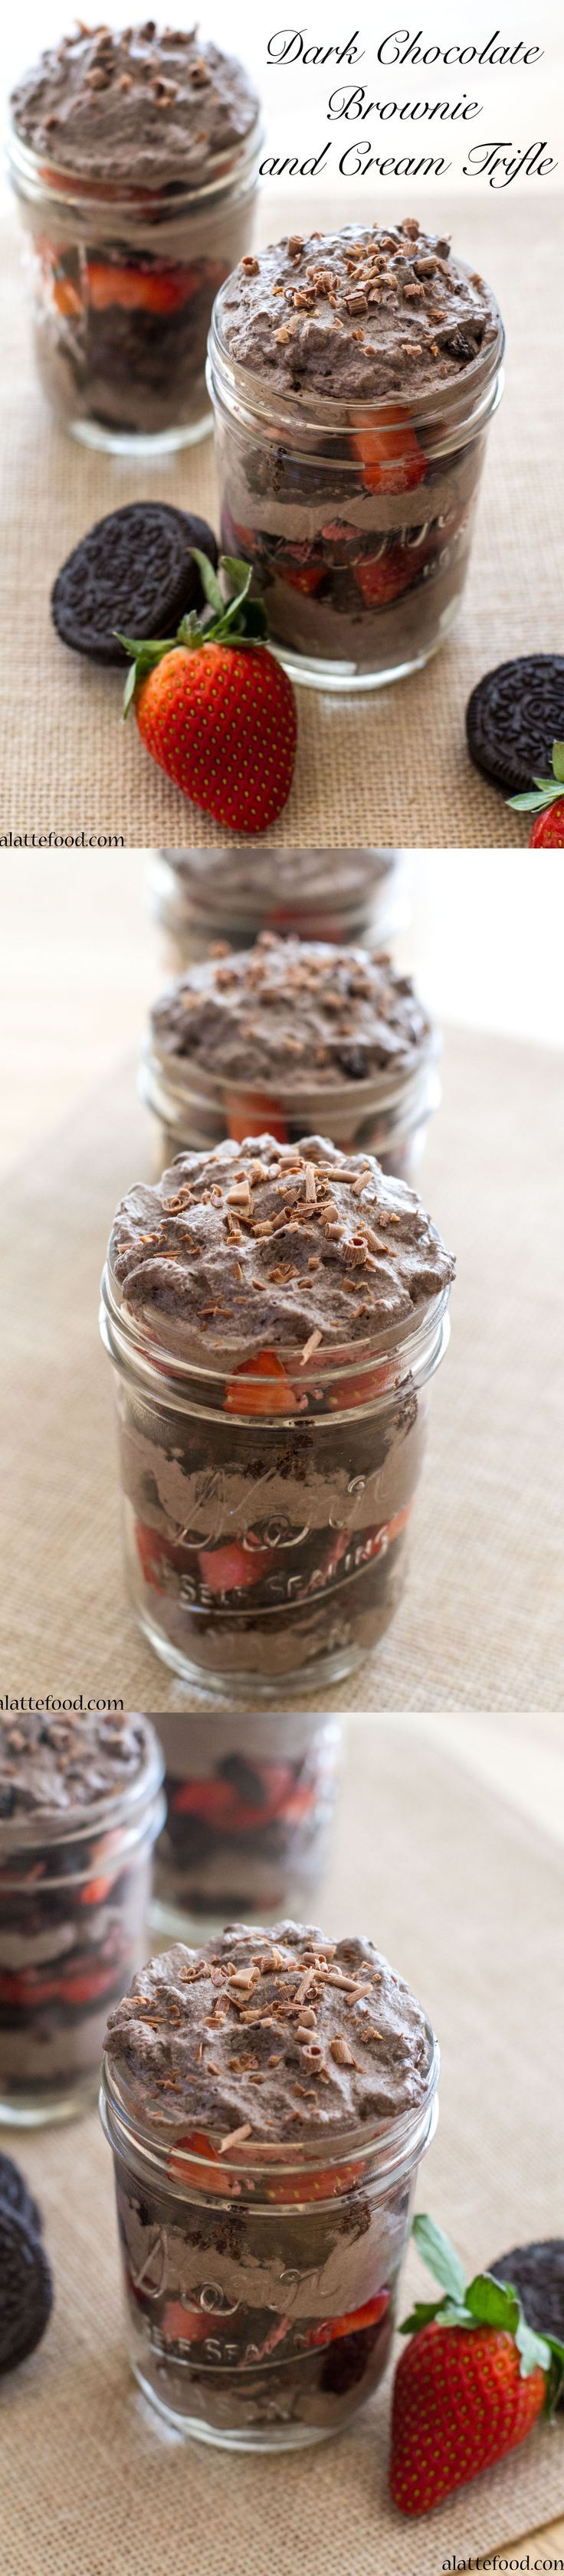 Dark Chocolate Brownie and Cream Trifle: This decadent trifle is layers of dark chocolate whipped cream, dark chocolate brownies, strawberries, and Oreos.